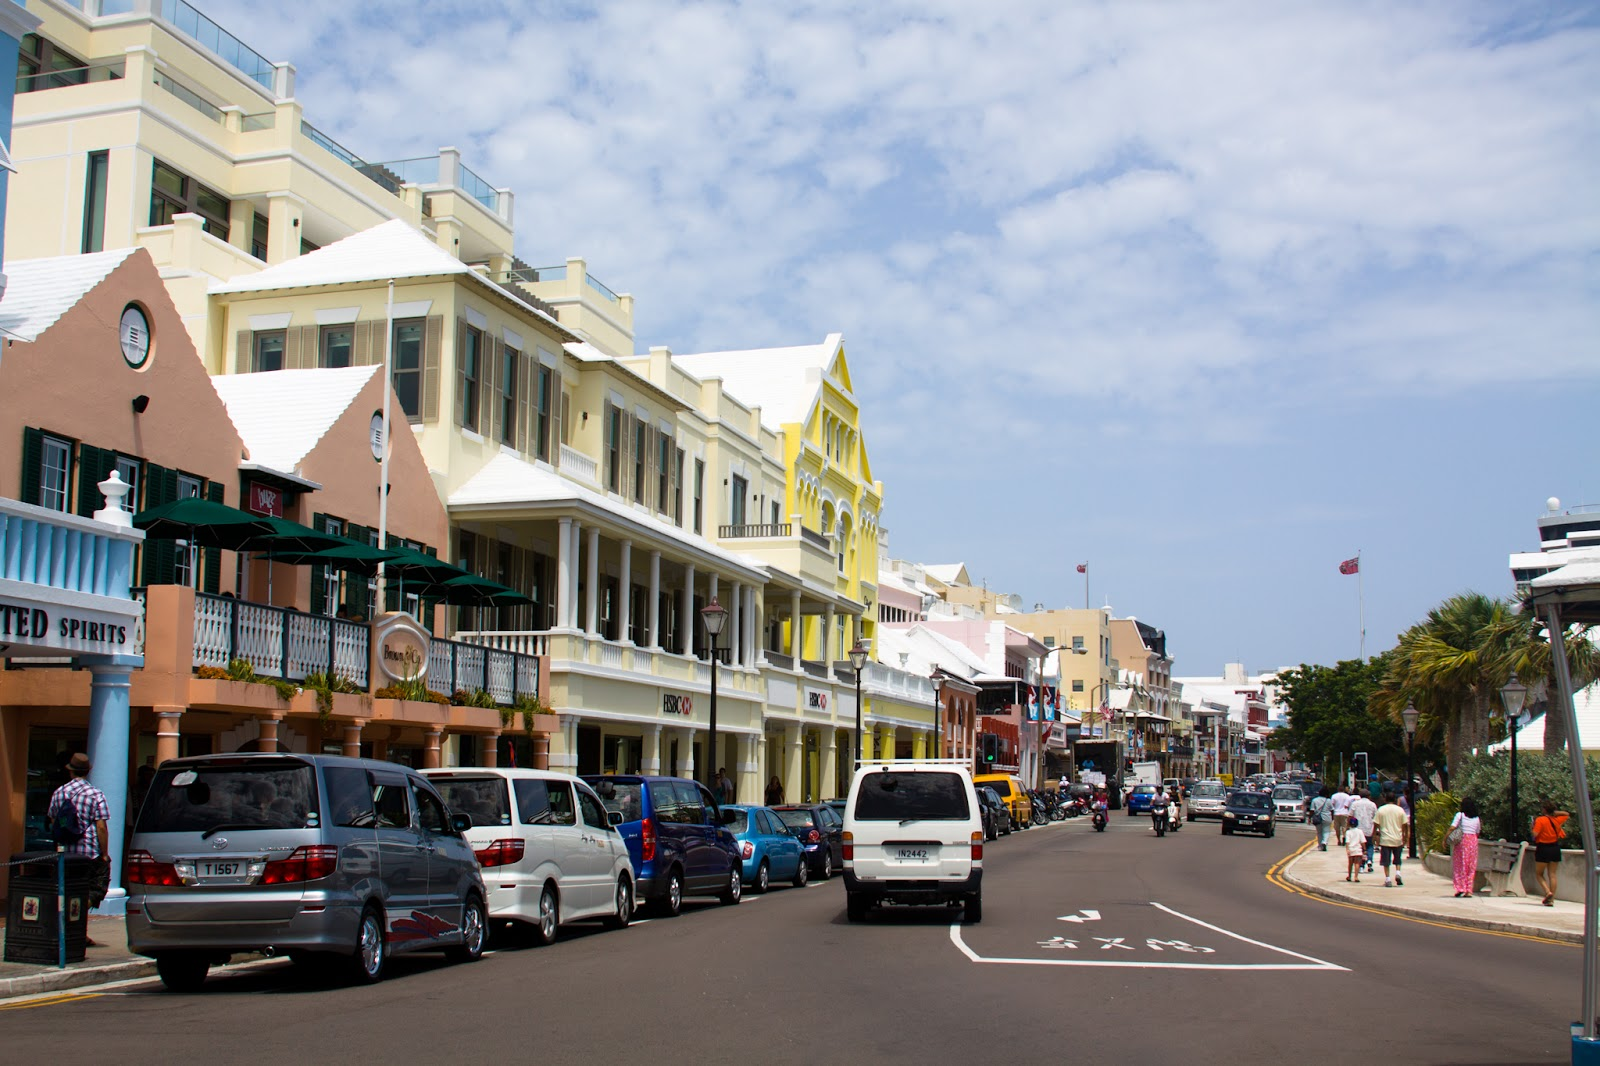 Art Stores In Hamilton Hamilton Bermuda Travel Guide Exotic Travel Destination